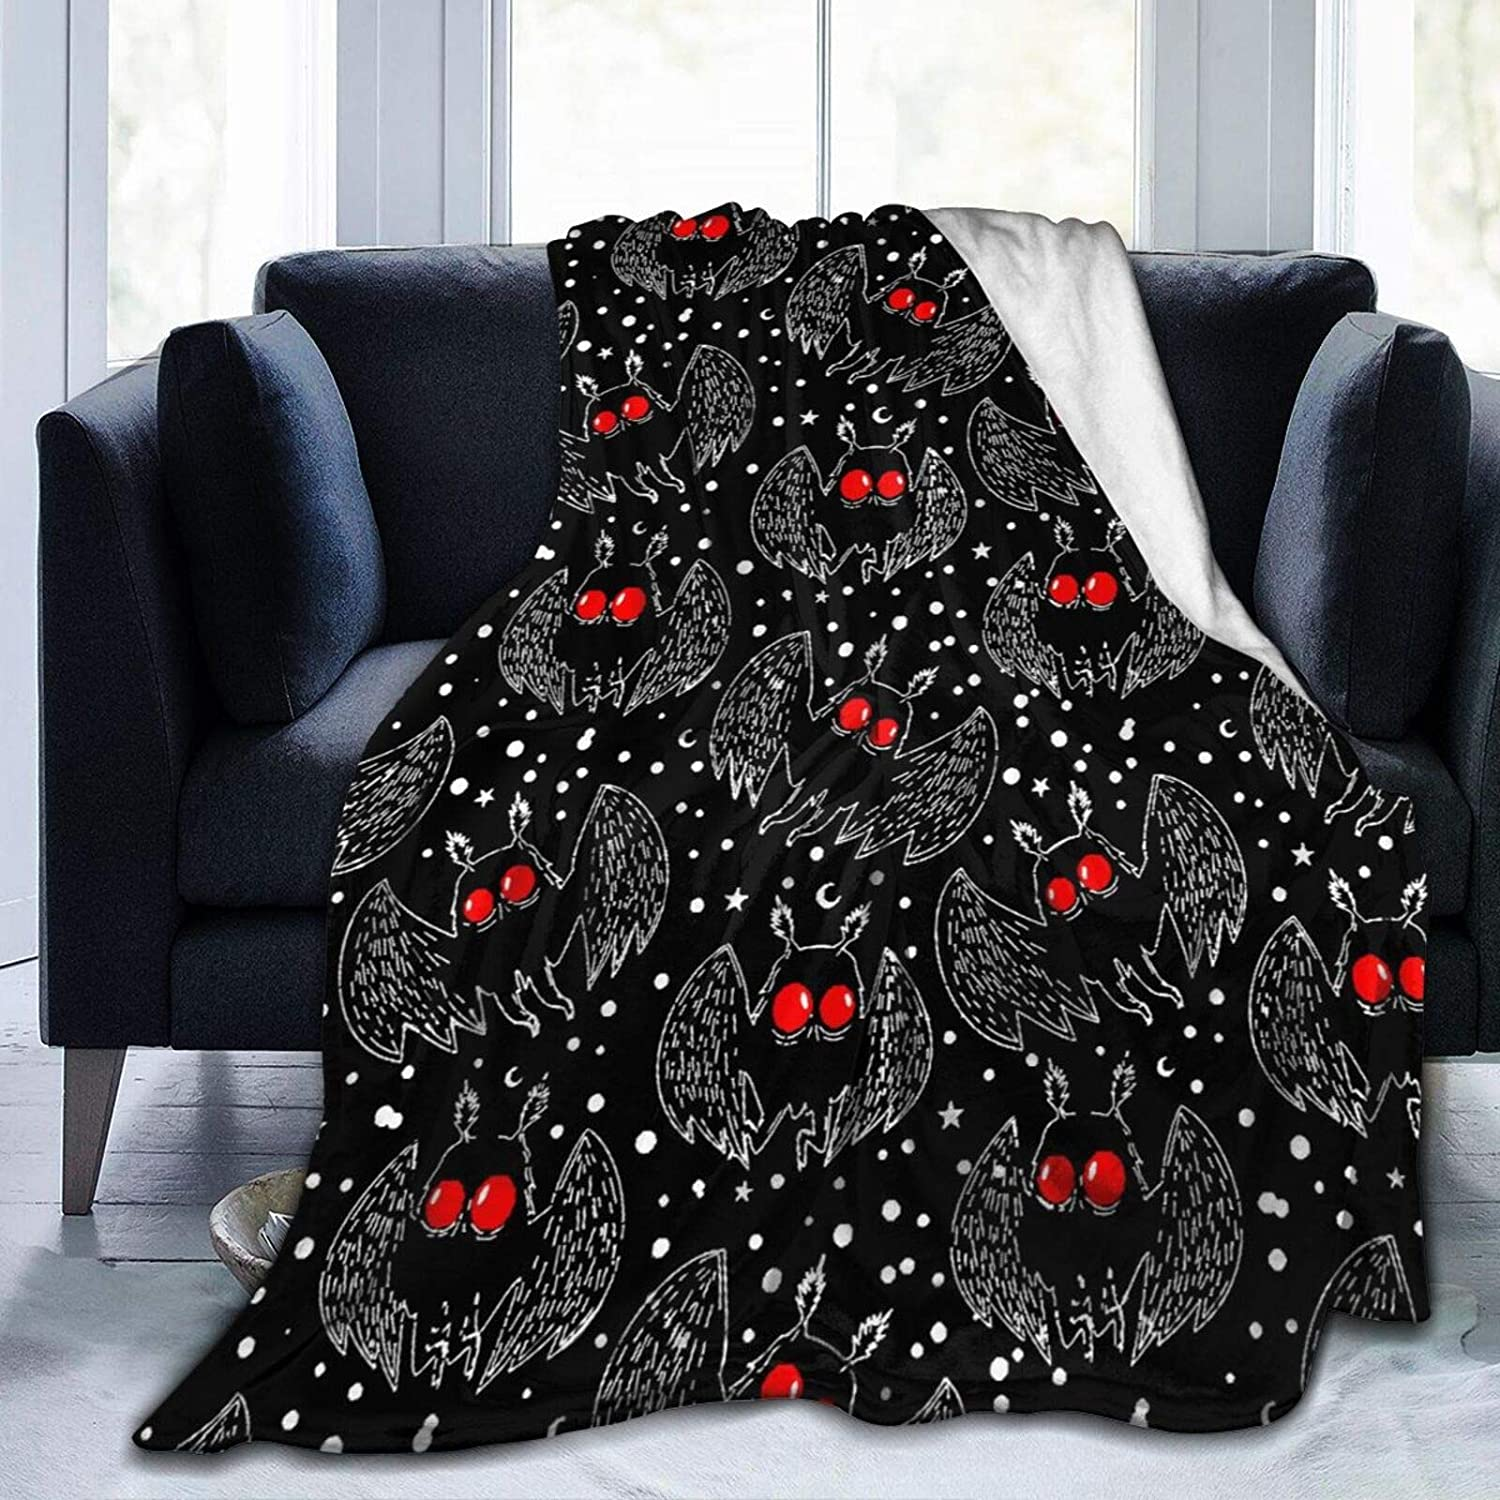 """Kuozuln Needlove Mothman Night Throw Blanket Suitable Ultra Soft Weighted Bedding Fleece Blanket for Sofa Bed Office 60""""x50"""" Travel Multi-Size for Adult"""